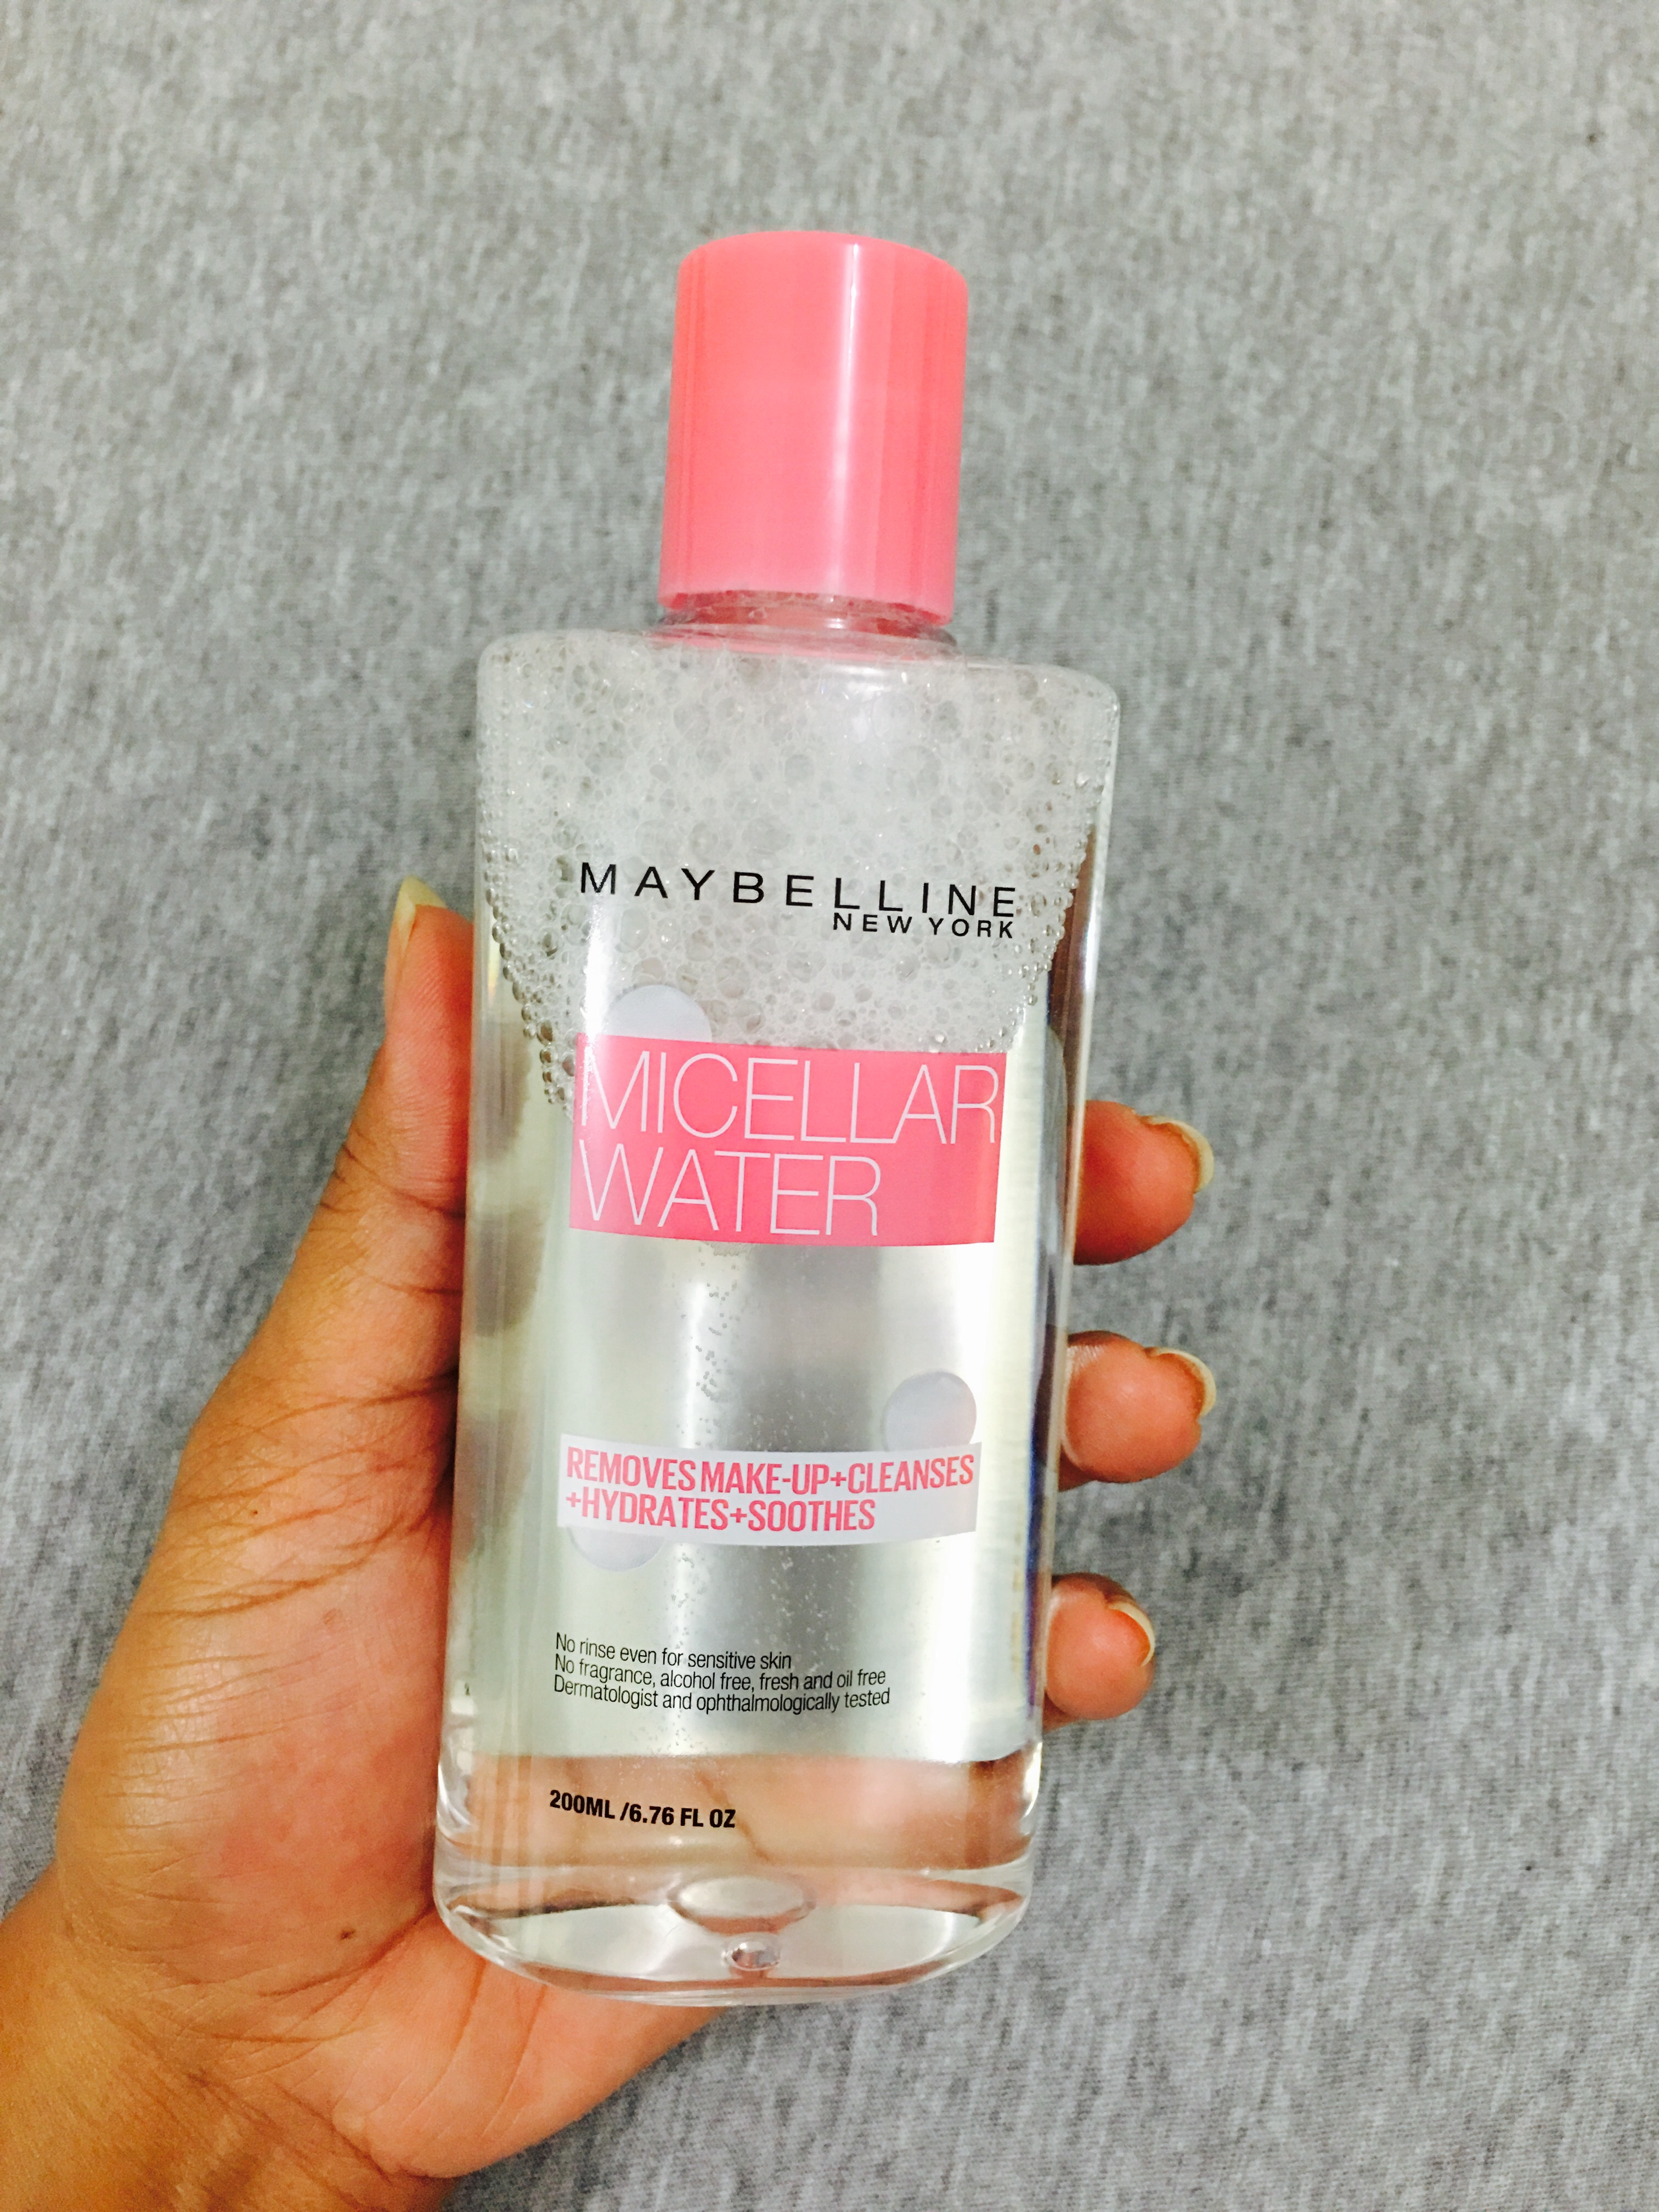 Maybelline Eye Makeup Remover Philippines - Makeup Vidalondon